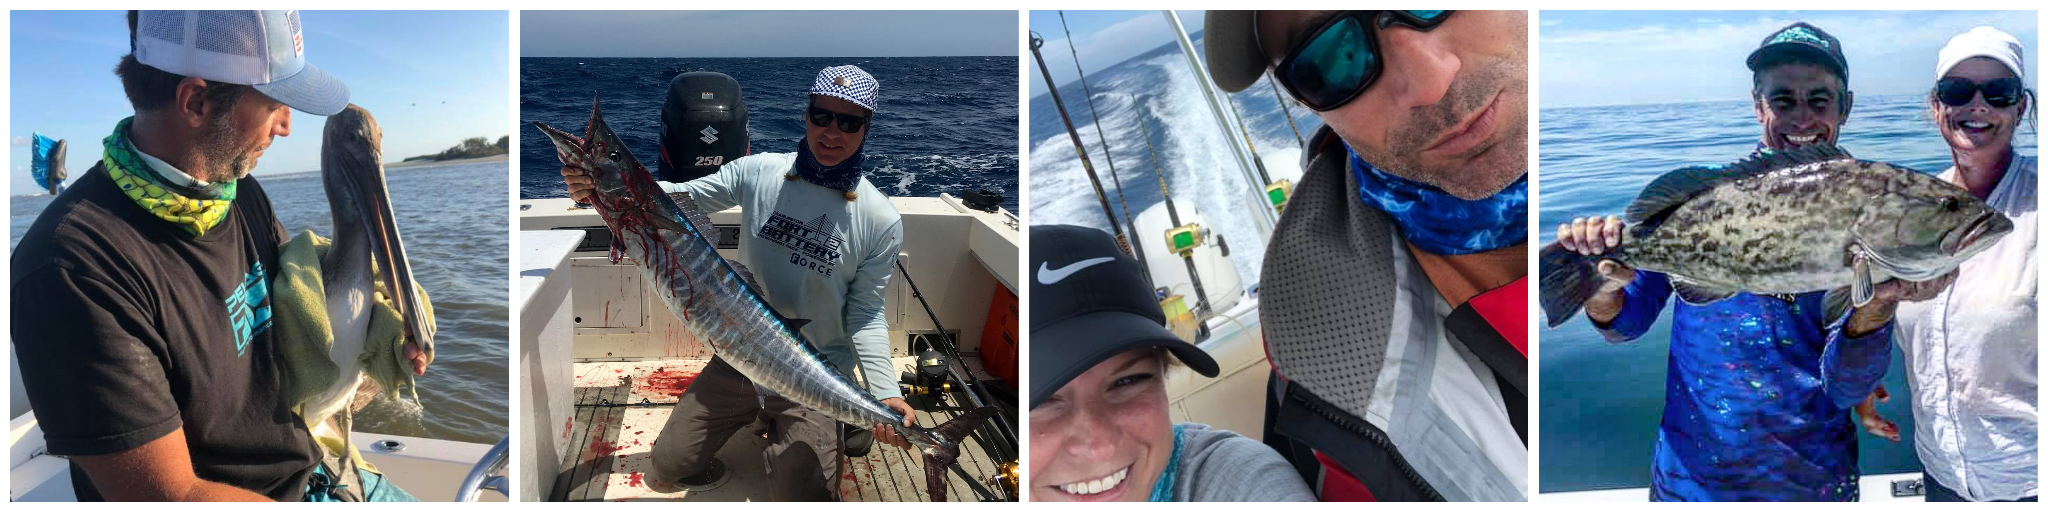 Deep Sea Nearshore and Offshore Fishing Guide - Capt. Justin